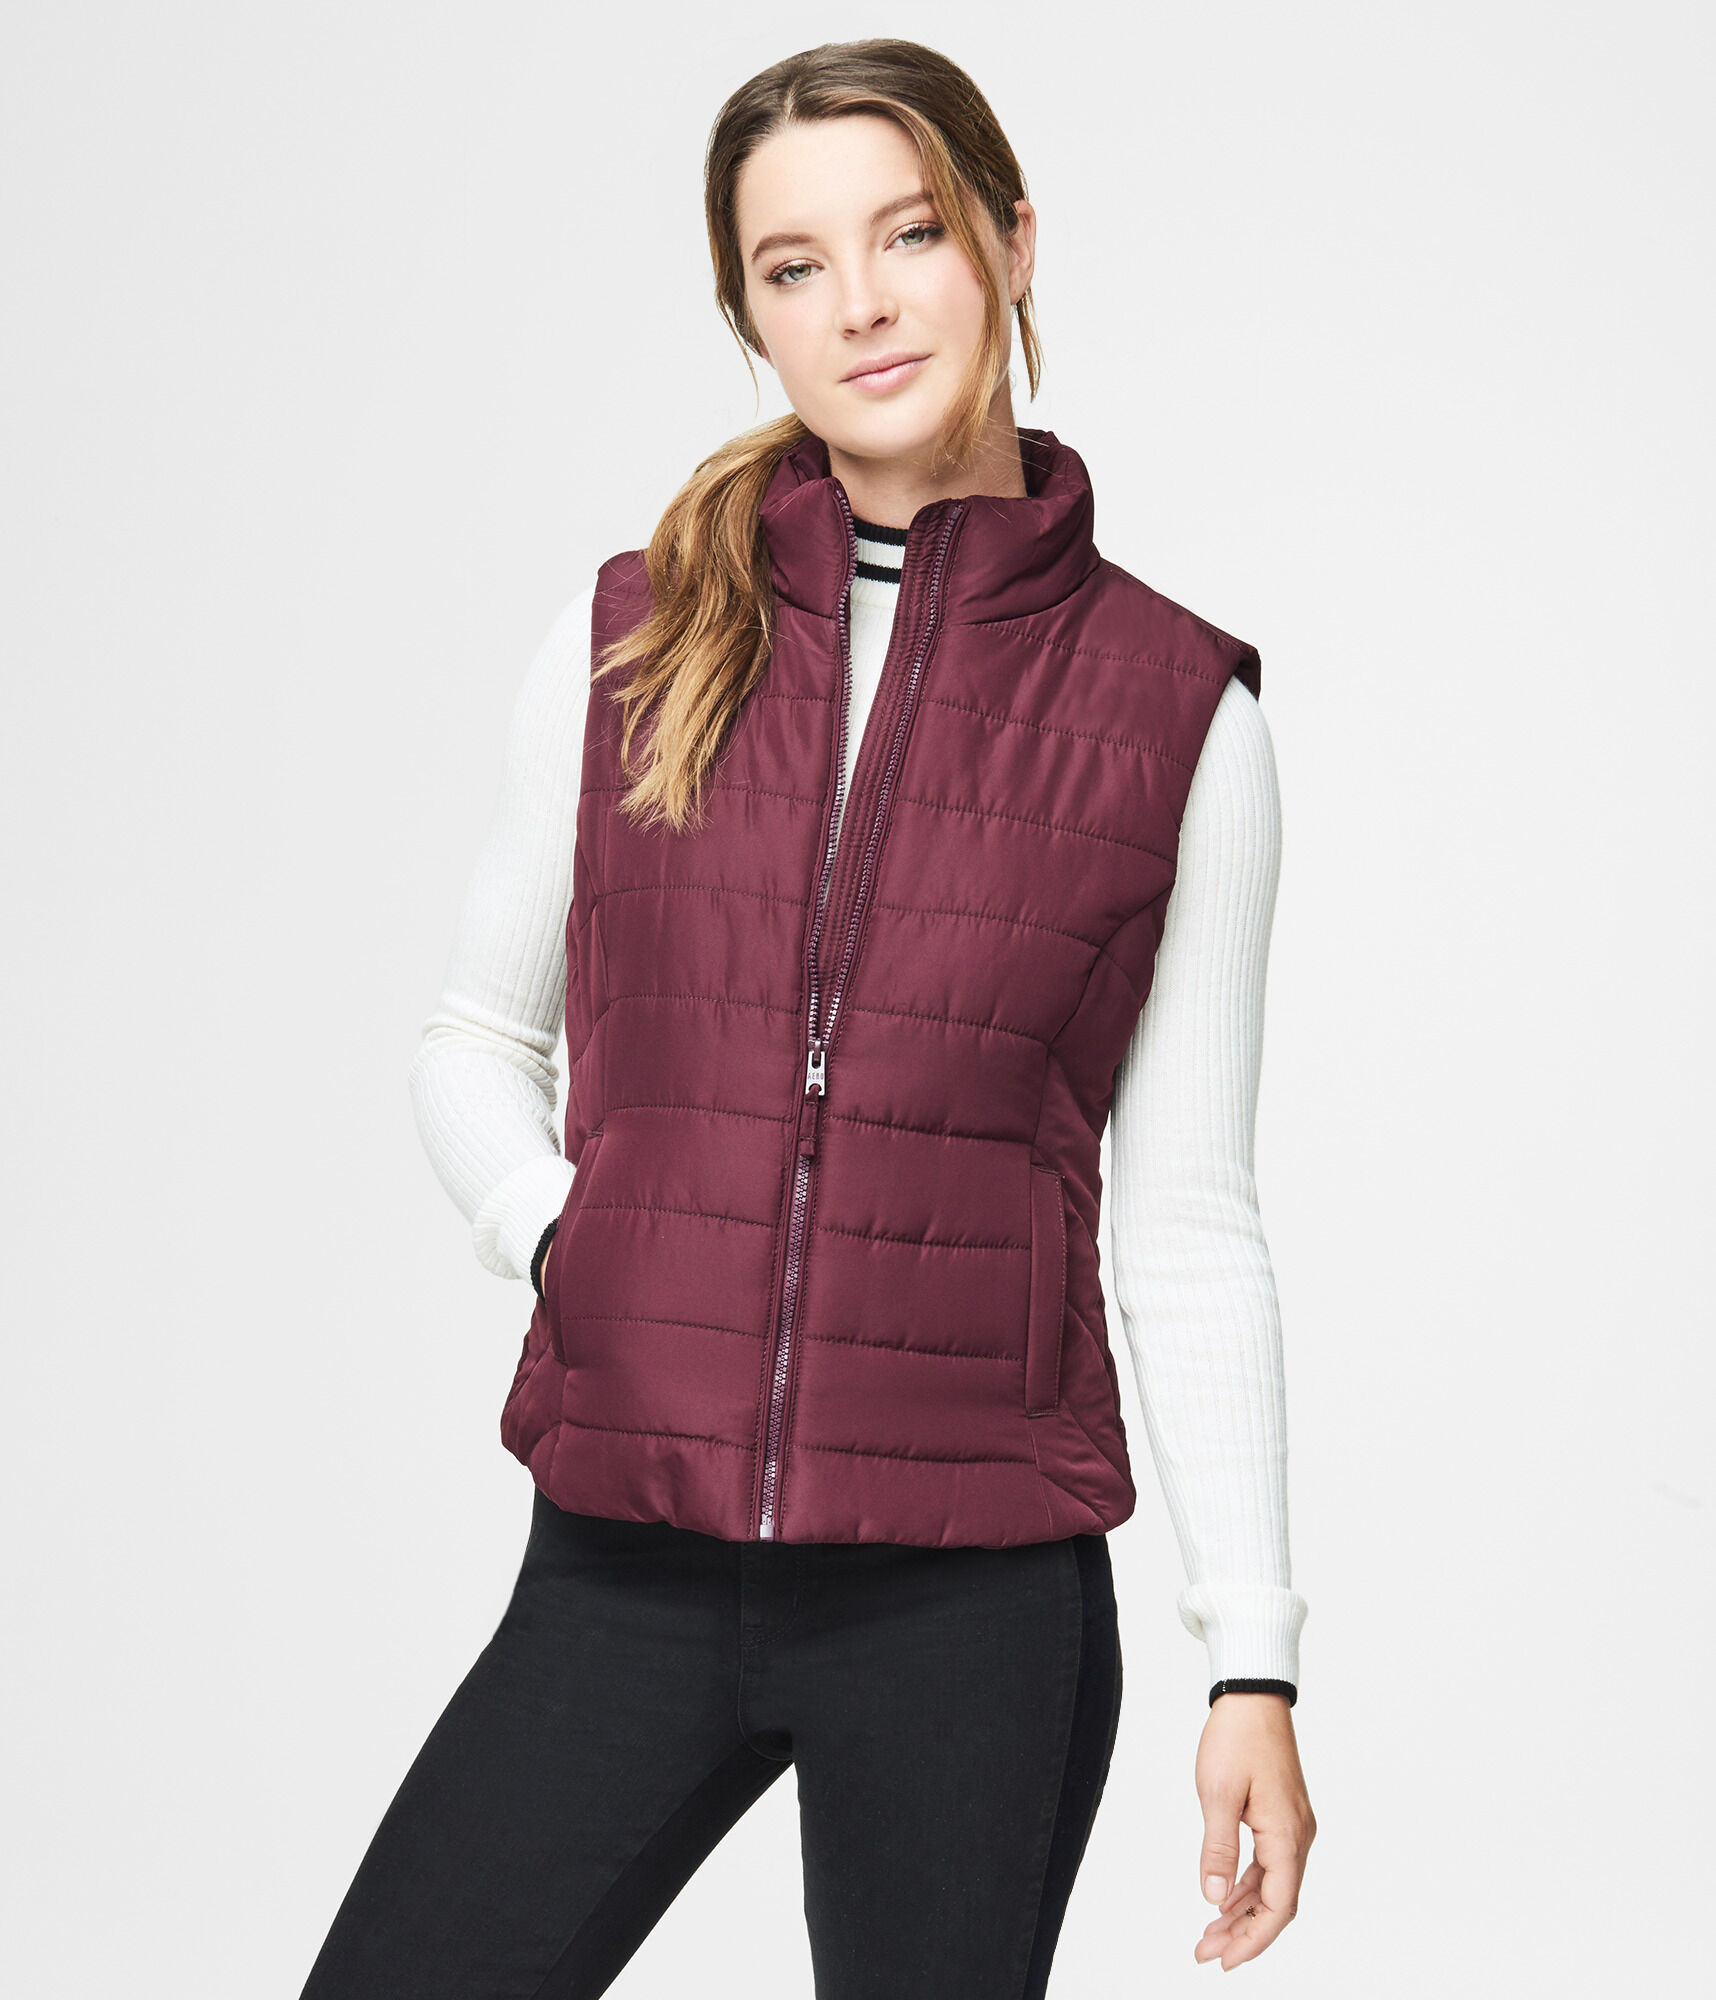 lauren vest normal gallery for navy quilt polo lyst diamond quilted in blue aviator product clothing ralph men